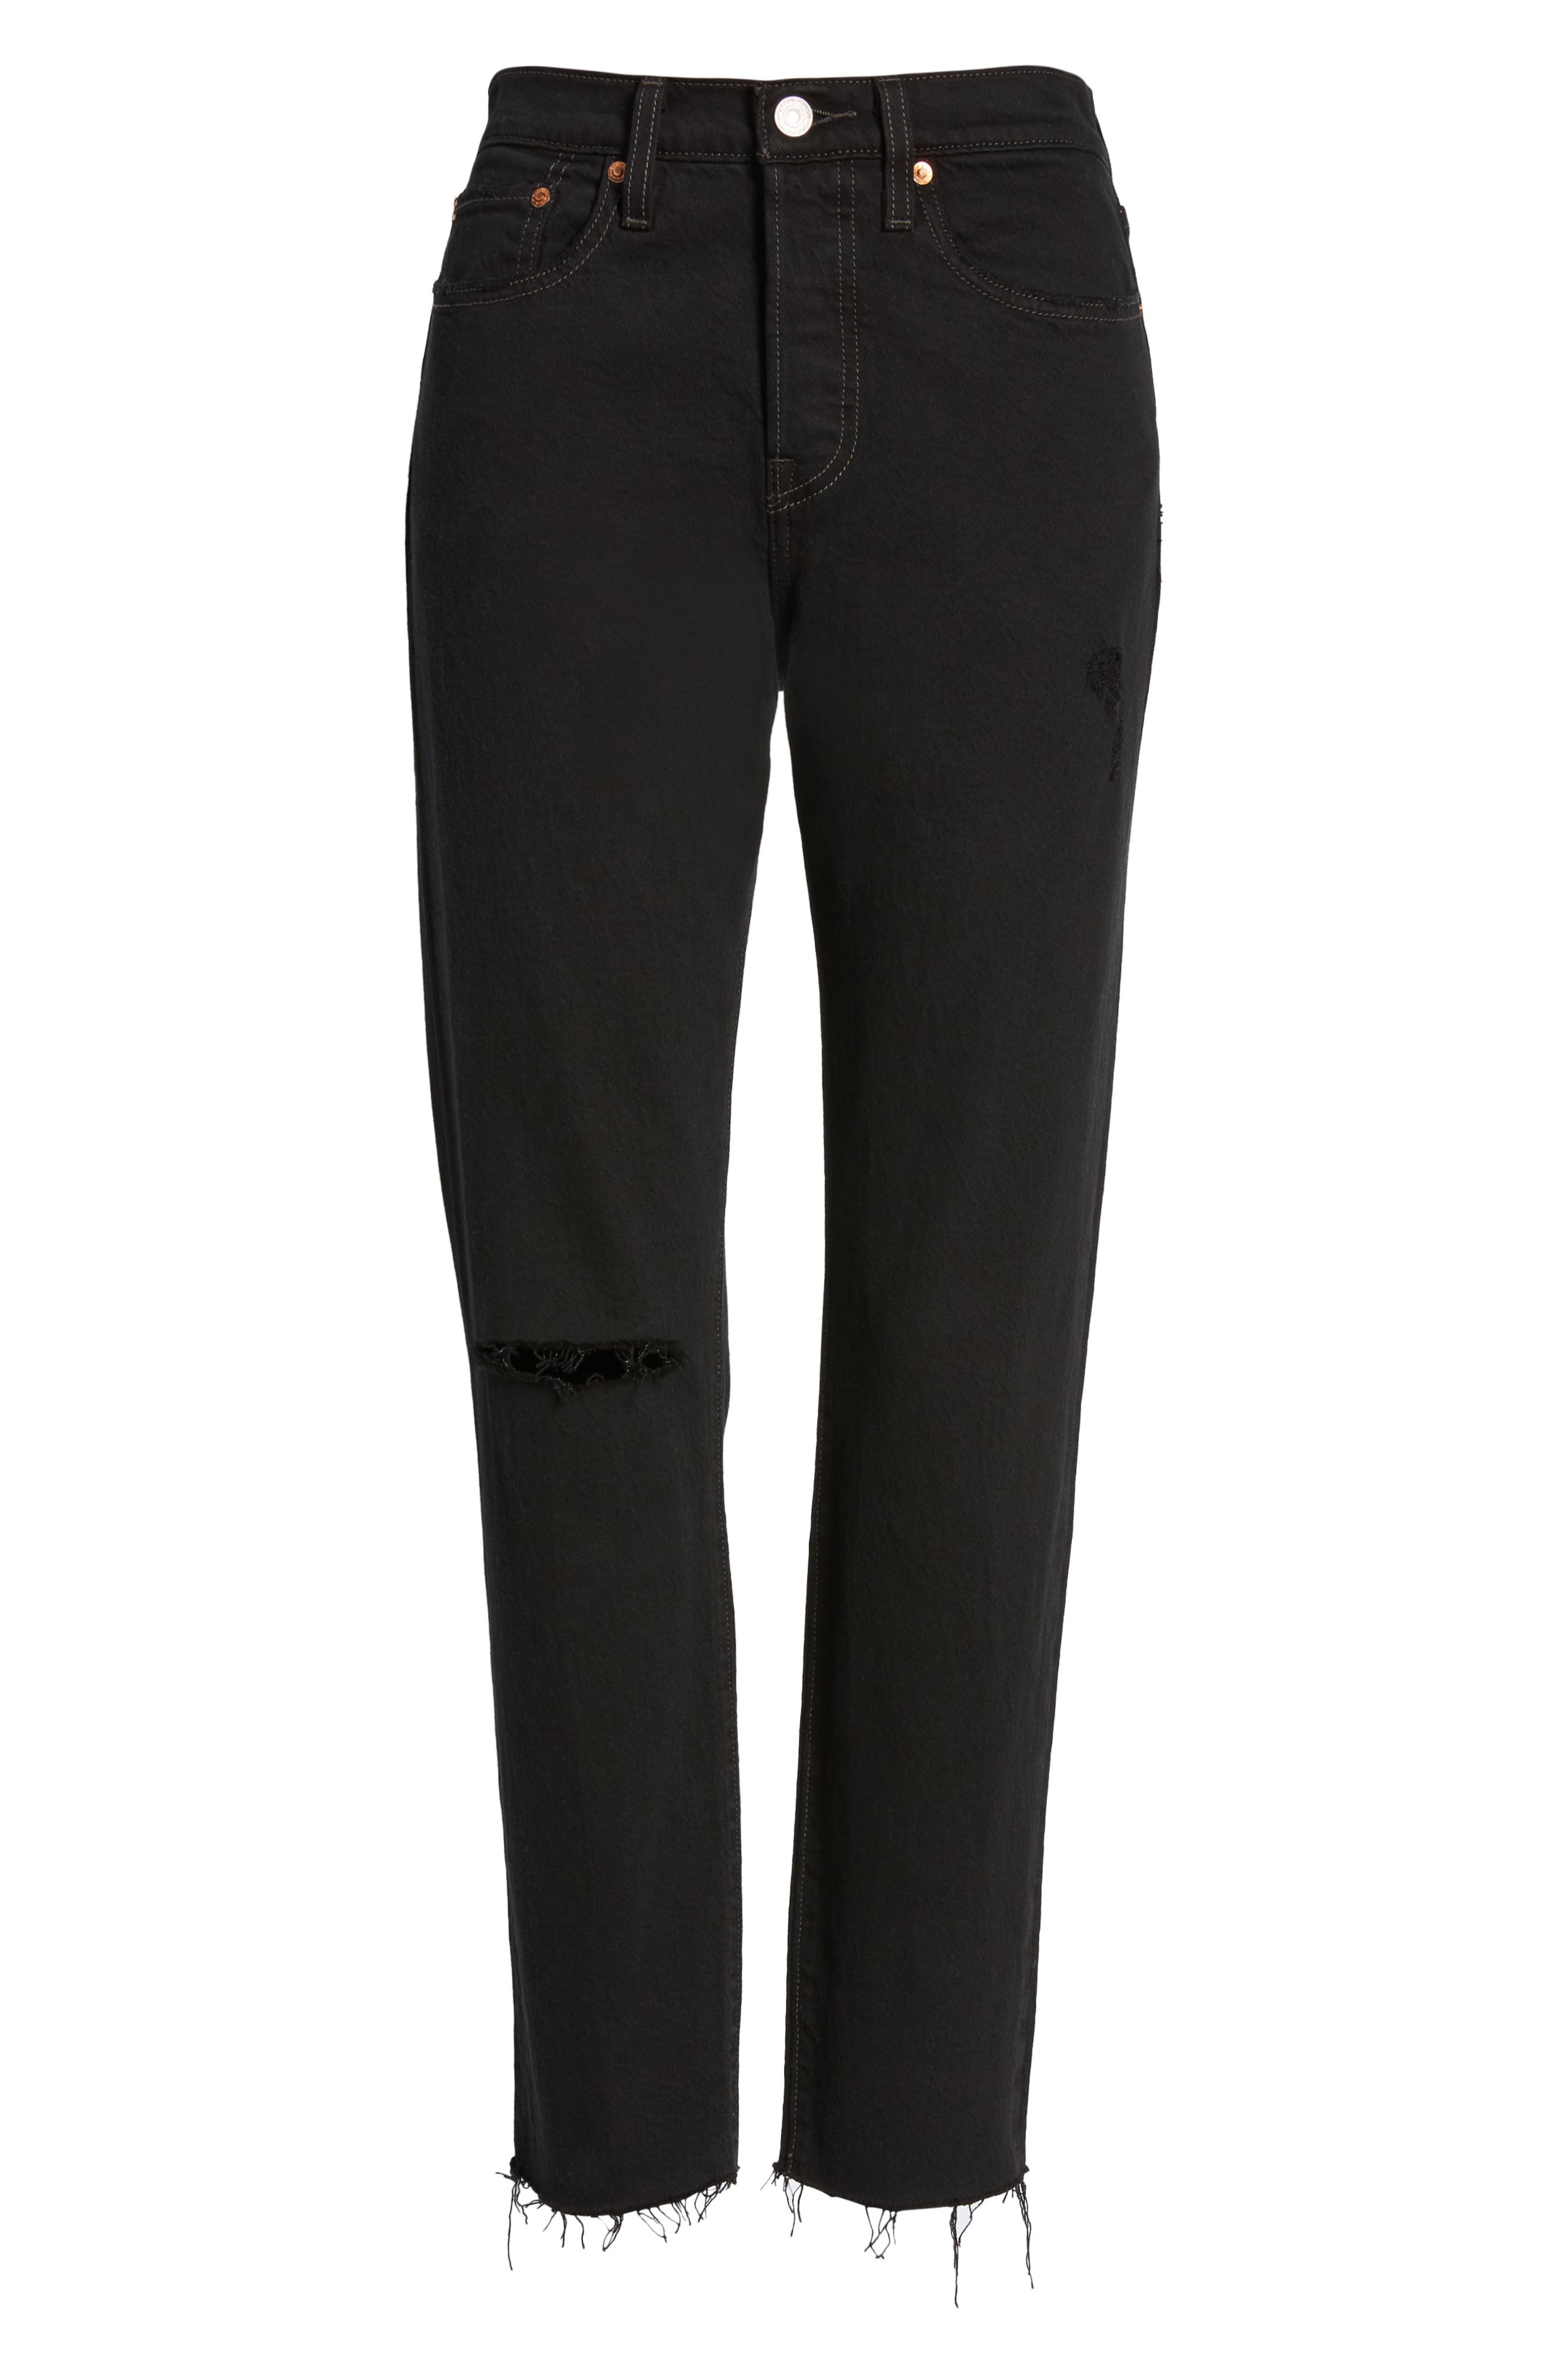 LEVI'S<SUP>®</SUP>, Wedgie Icon Fit High Waist Ripped Skinny Jeans, Alternate thumbnail 7, color, BLACK DESERT